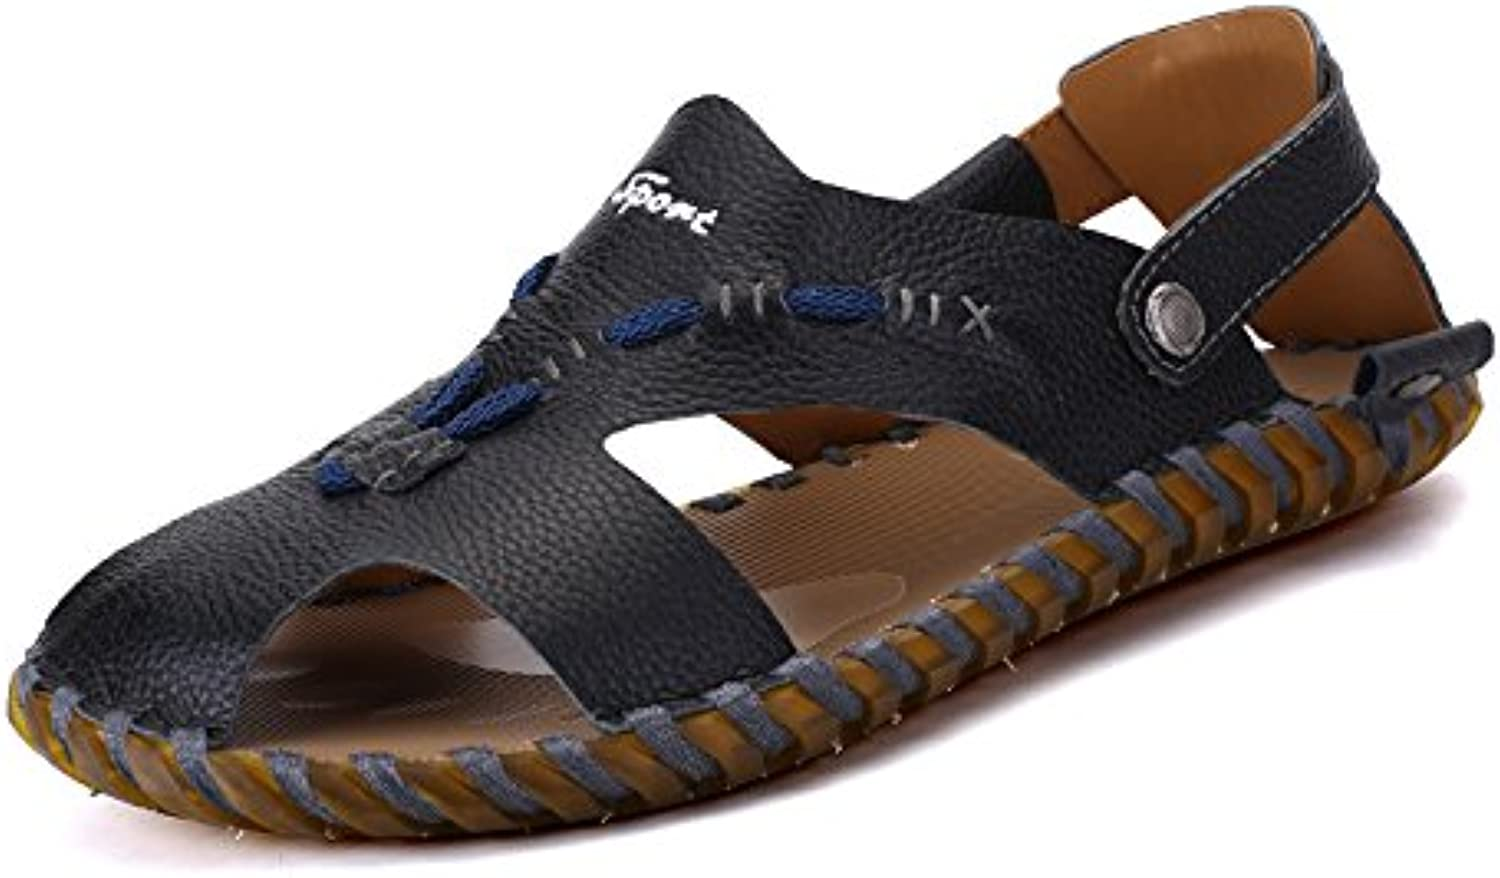 Men's sandals, summer students, leather beach shoes, slippers